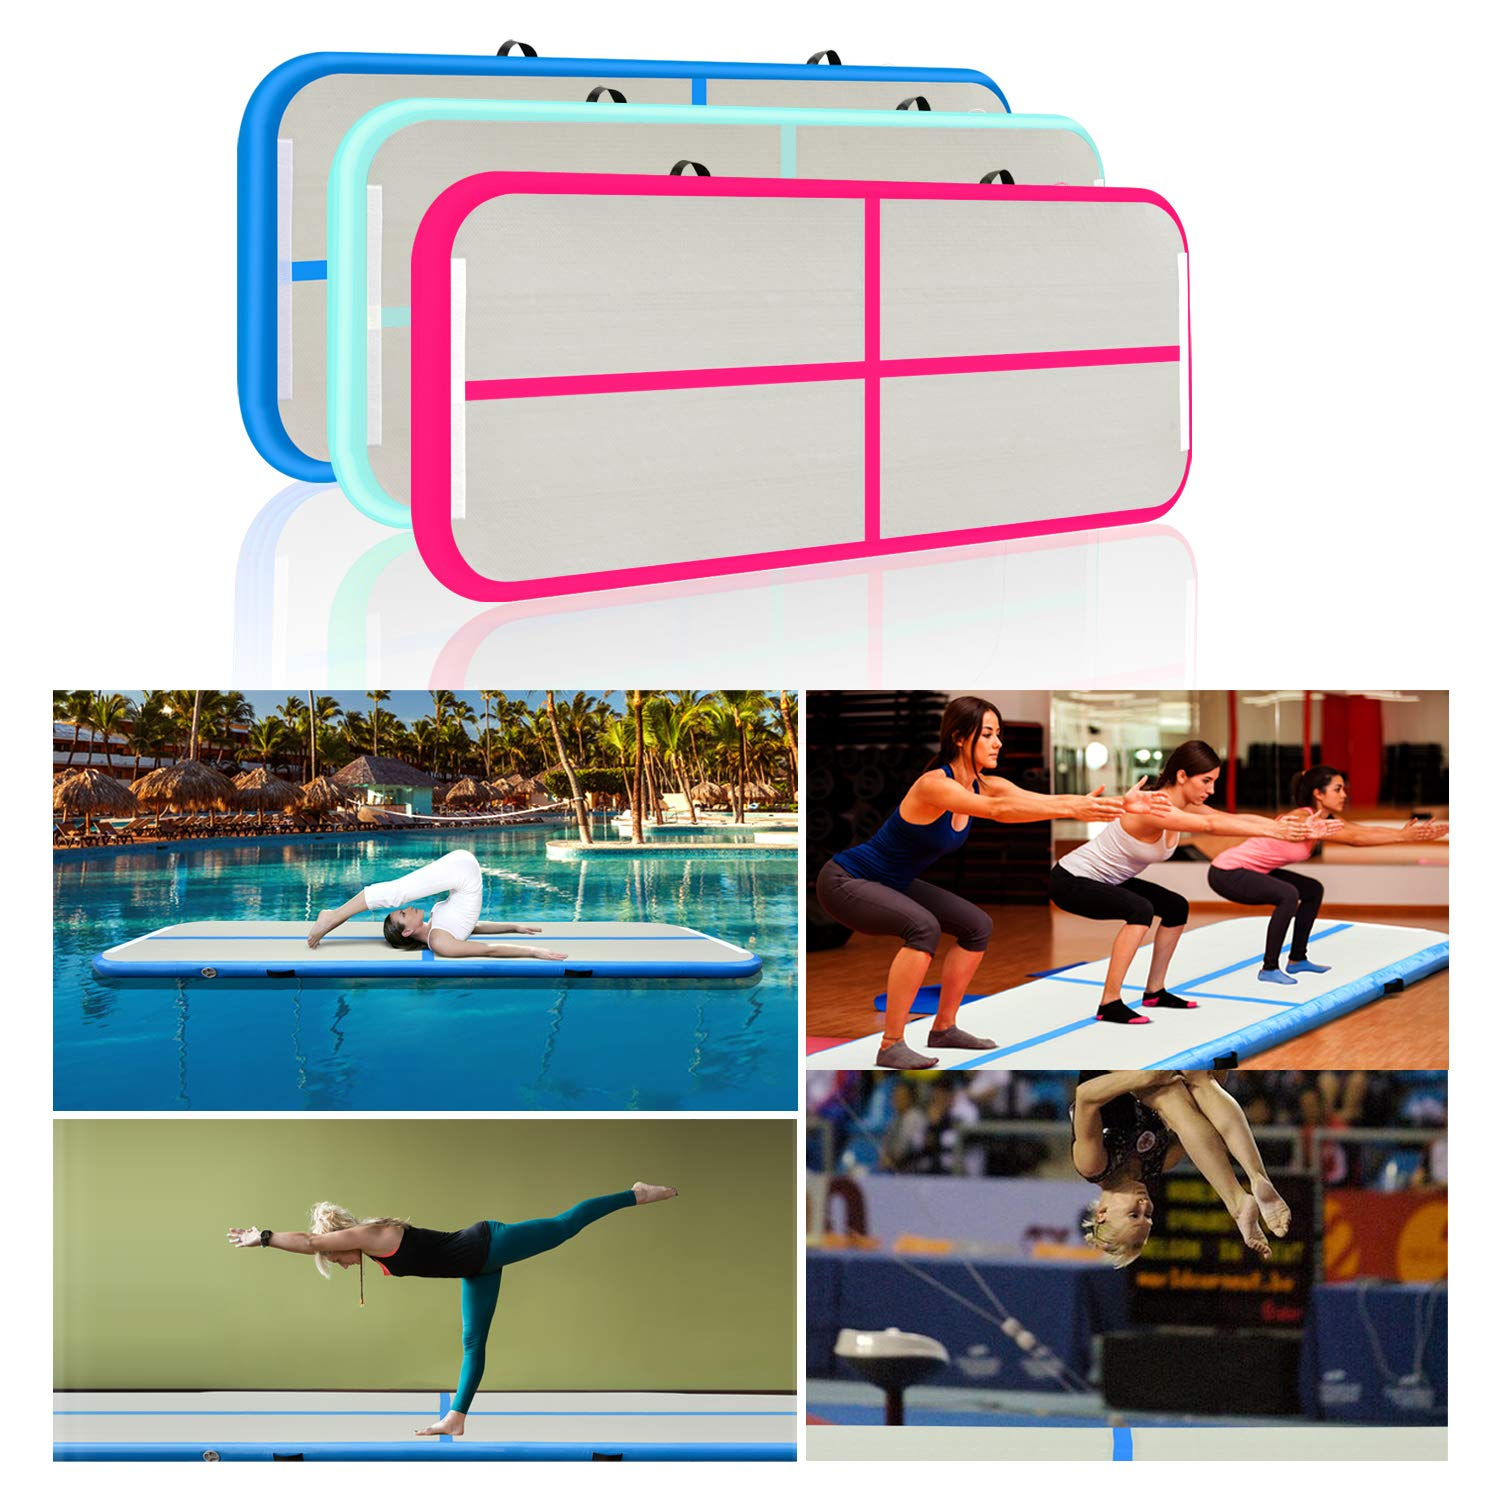 Amazon.com: Royallight - Colchoneta hinchable para gimnasia ...